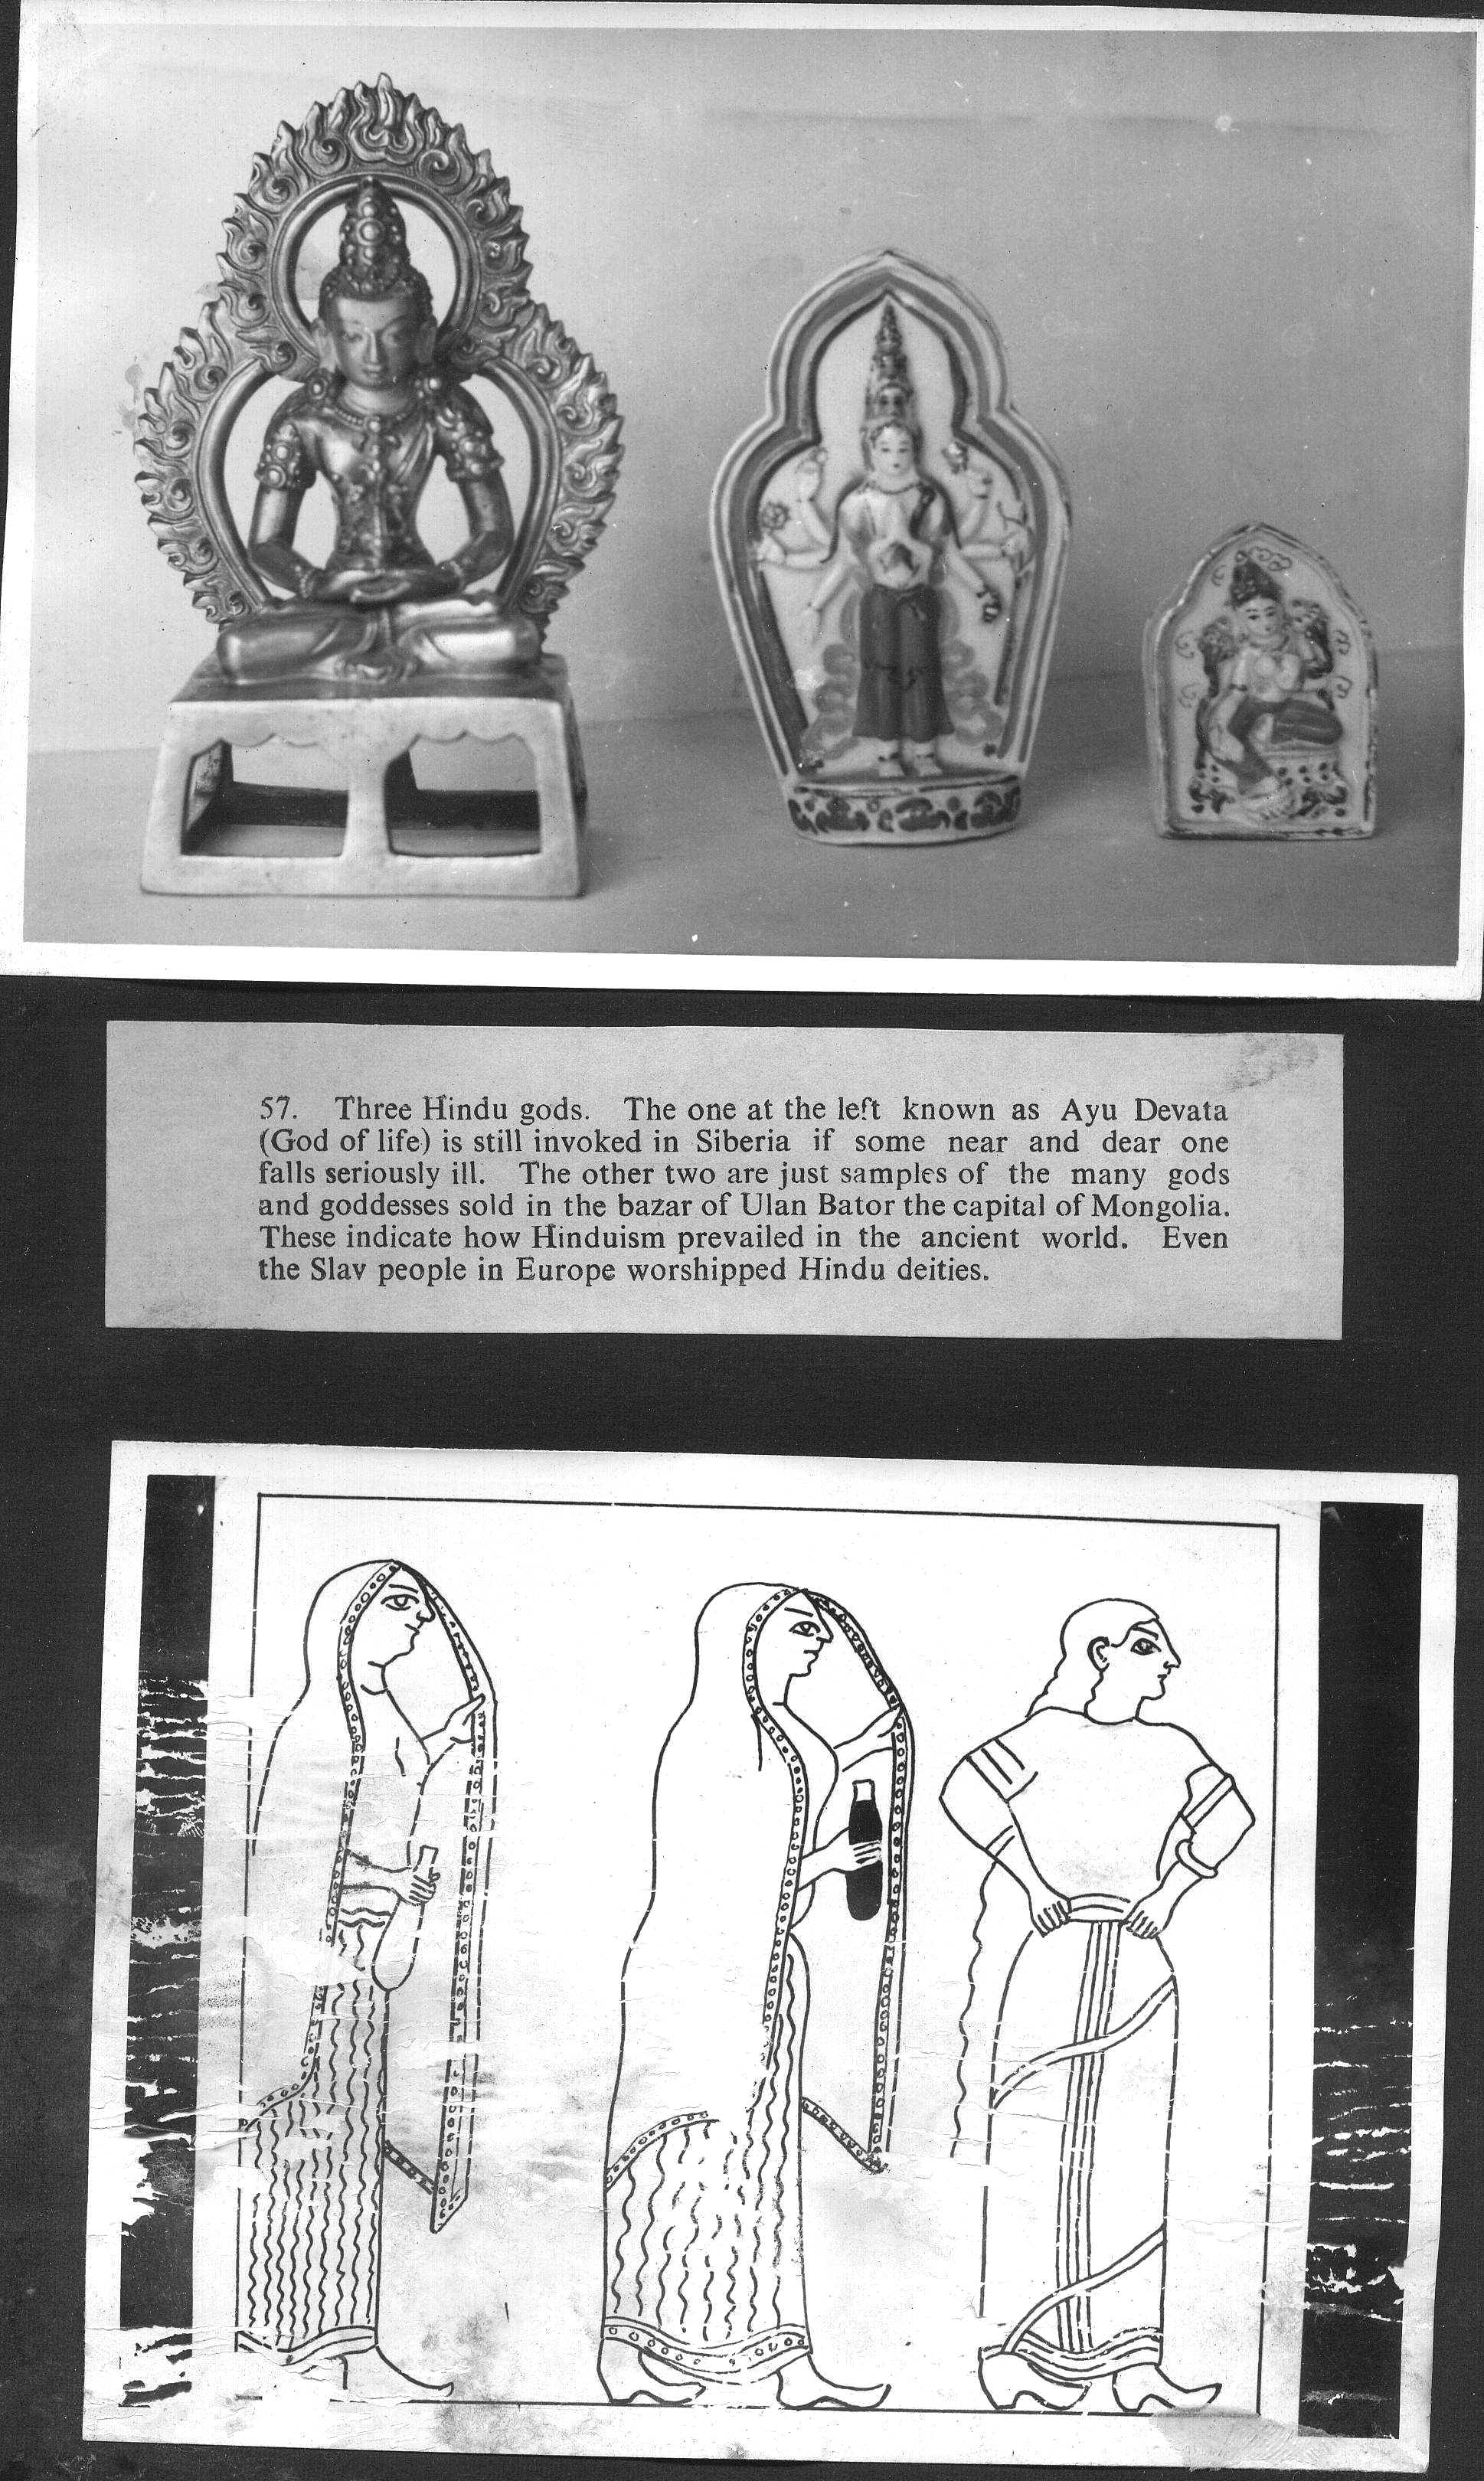 Siberian Invoke Hindu Gods during Illness,Bottom image ramayana scene found in an Italains Home.jpg